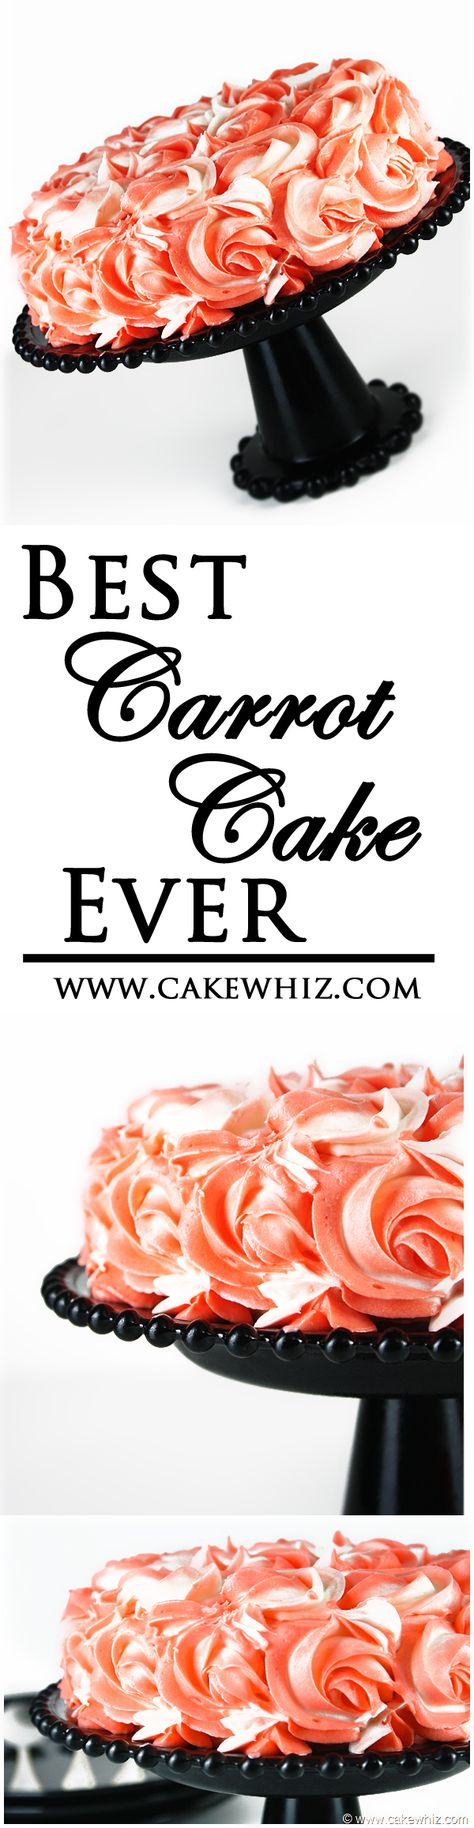 The BEST CARROT CAKE ever! Everyone always asks for my recipe. And I also did a tutorial on these easy BUTTERCREAM ROSES so that your cake looks pretty too :) From cakewhiz.com